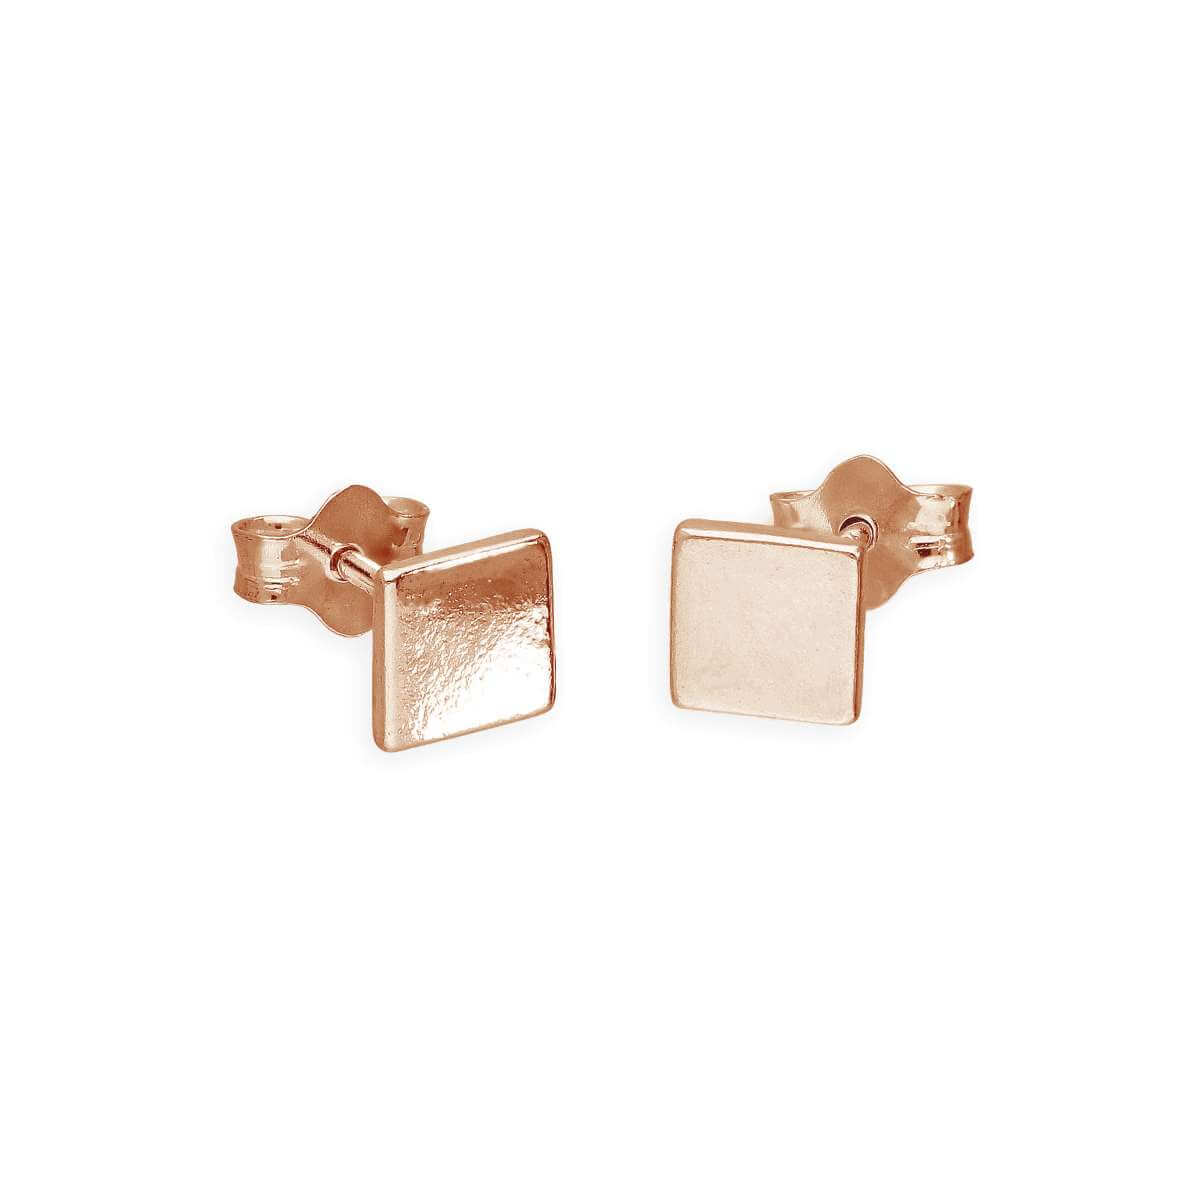 Rose Gold Plated Sterling Silver 5mm Square Stud Earrings